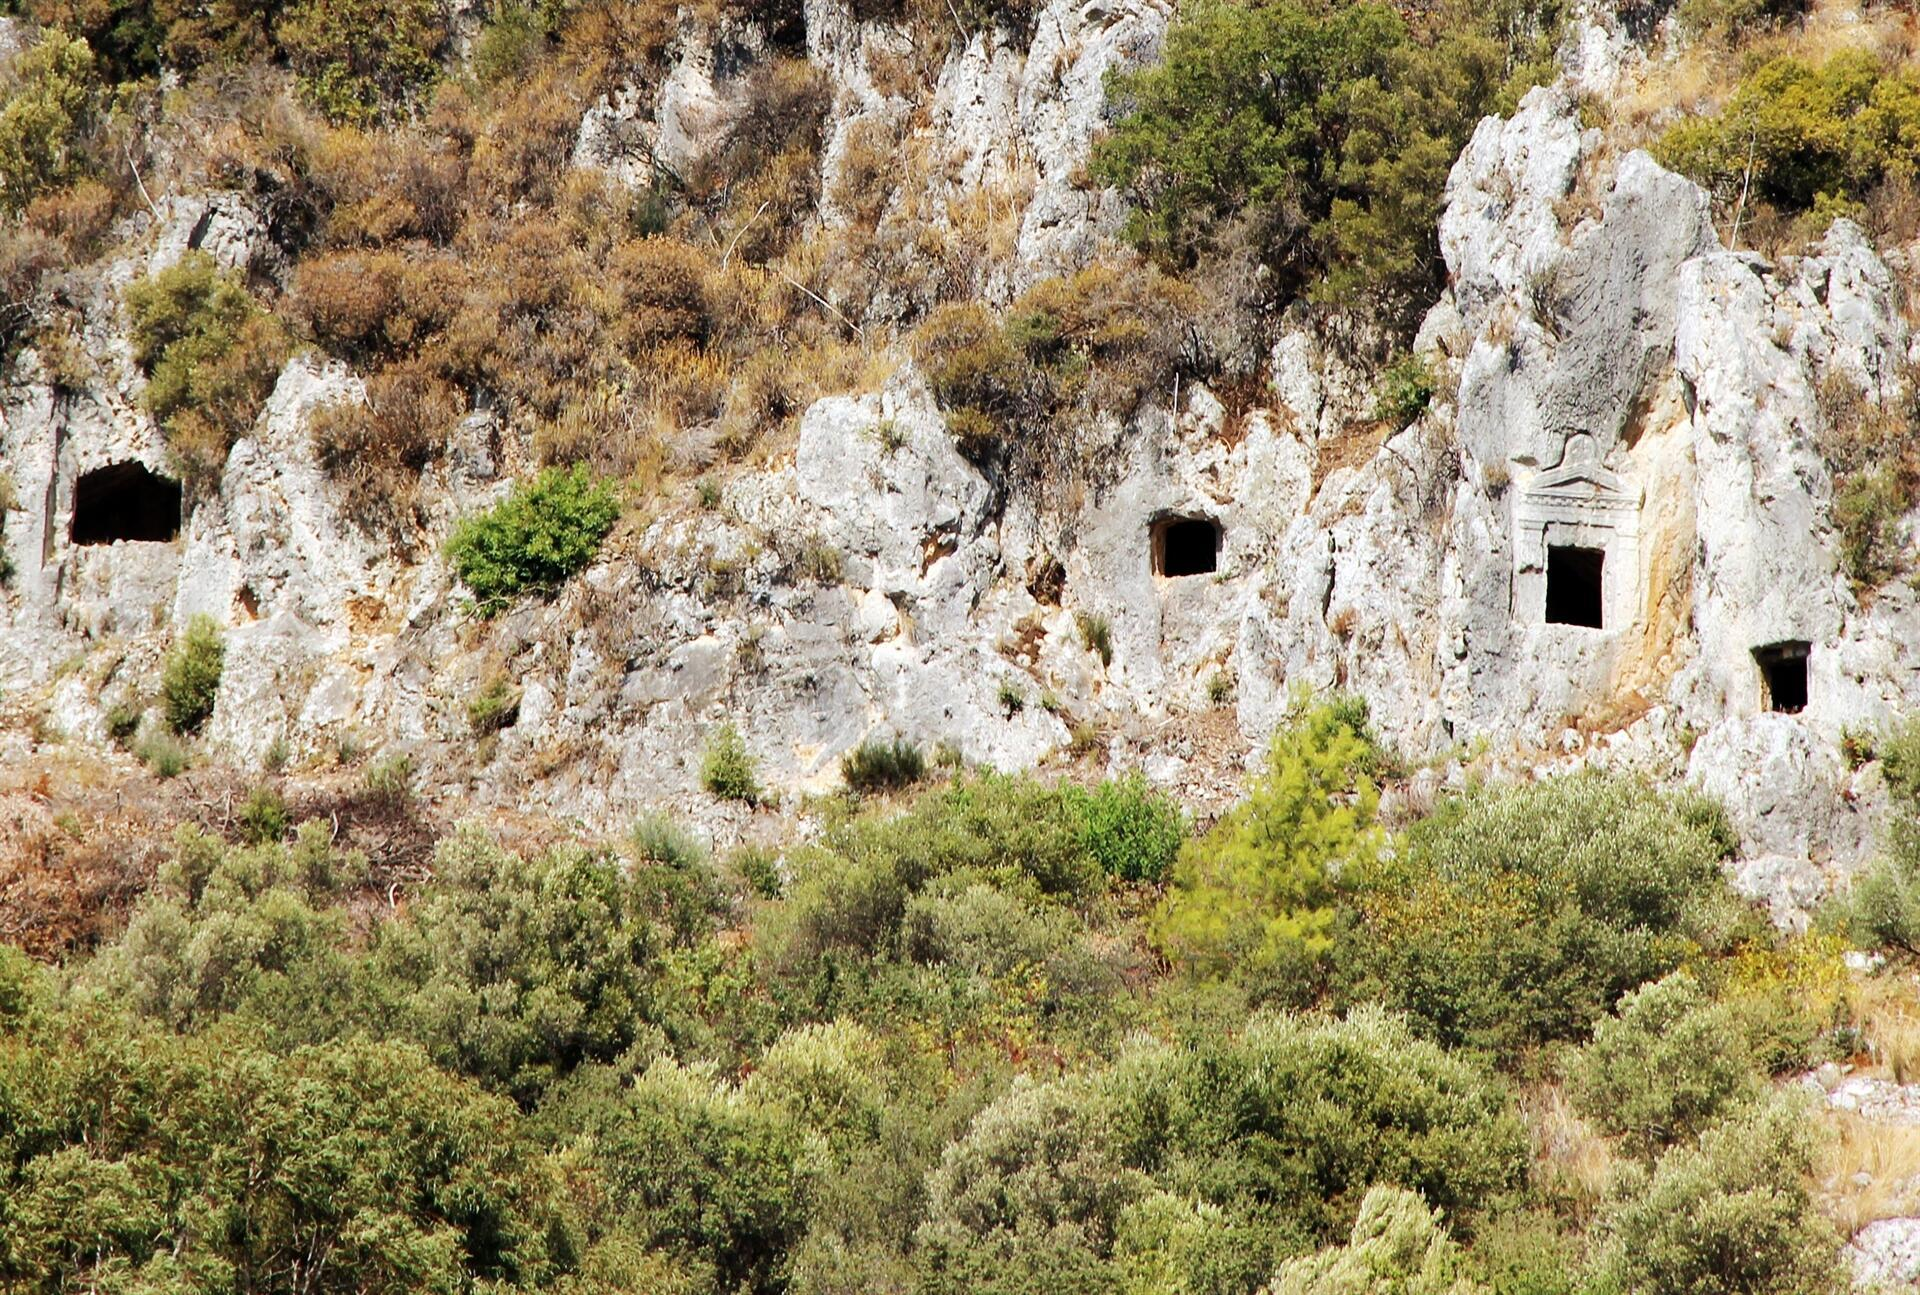 Idyma ancient city comes to surface